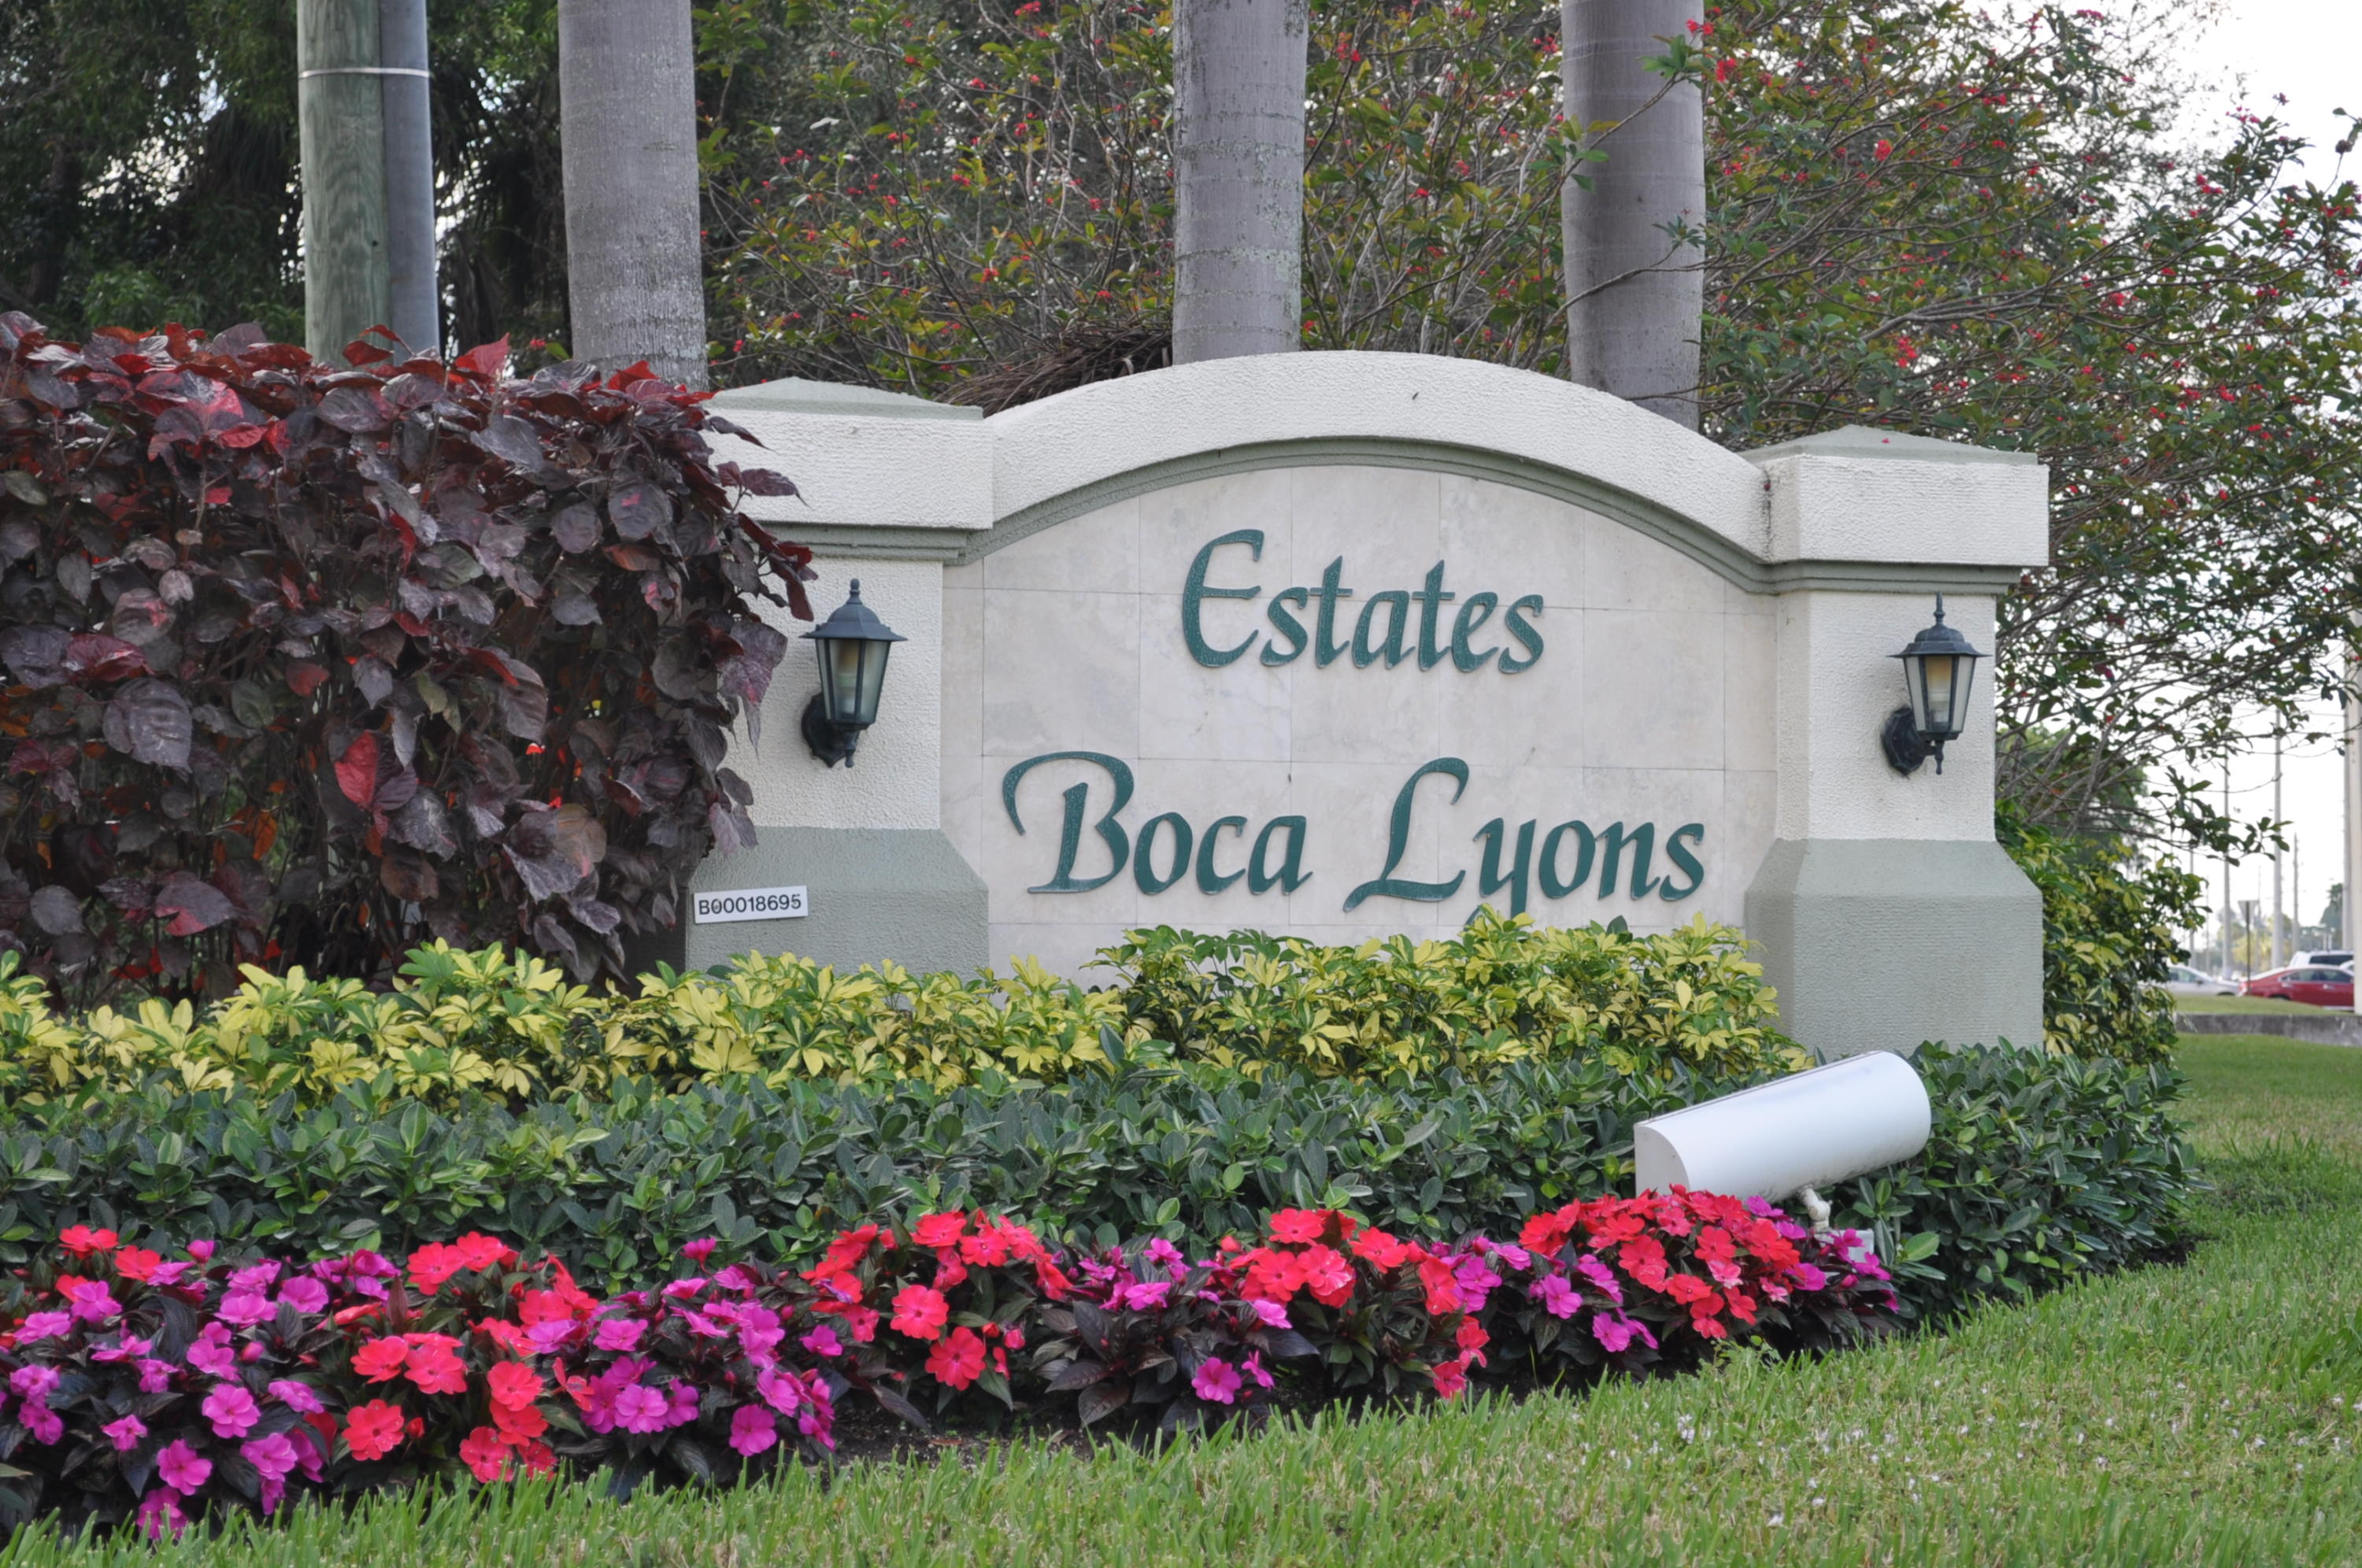 4 bedrooms, 2 1/2 bath, pool home in the desirable Estates of Boca Lyons, ''Bocas hidden secret''. Oversized 2 car garage.Spacious floor plan incl. a wood burning fireplace. Many updates incl kitchen w/ SS appliances, all bathrms, ceramic tile throughout. Lg laundry rm under A/C w/ tub &  2nd refrig. Inviting screened pool w/ travertine deck & patio..Pool is heated & a new child pool gate installed last yr.  2 A/C units, both 6 yrs. w/ Halo system. Yard is completely fenced w/ newer white poly fencing. Outside storage shed. Accordian shutters on all openings & hurricane rated garage door.Front of home has been restoned & beautifully landscaped. Sprinklers on well/pump & timer. Roof replaced in 2003. HOA is $100 a qtr. No appl/interview..Kid